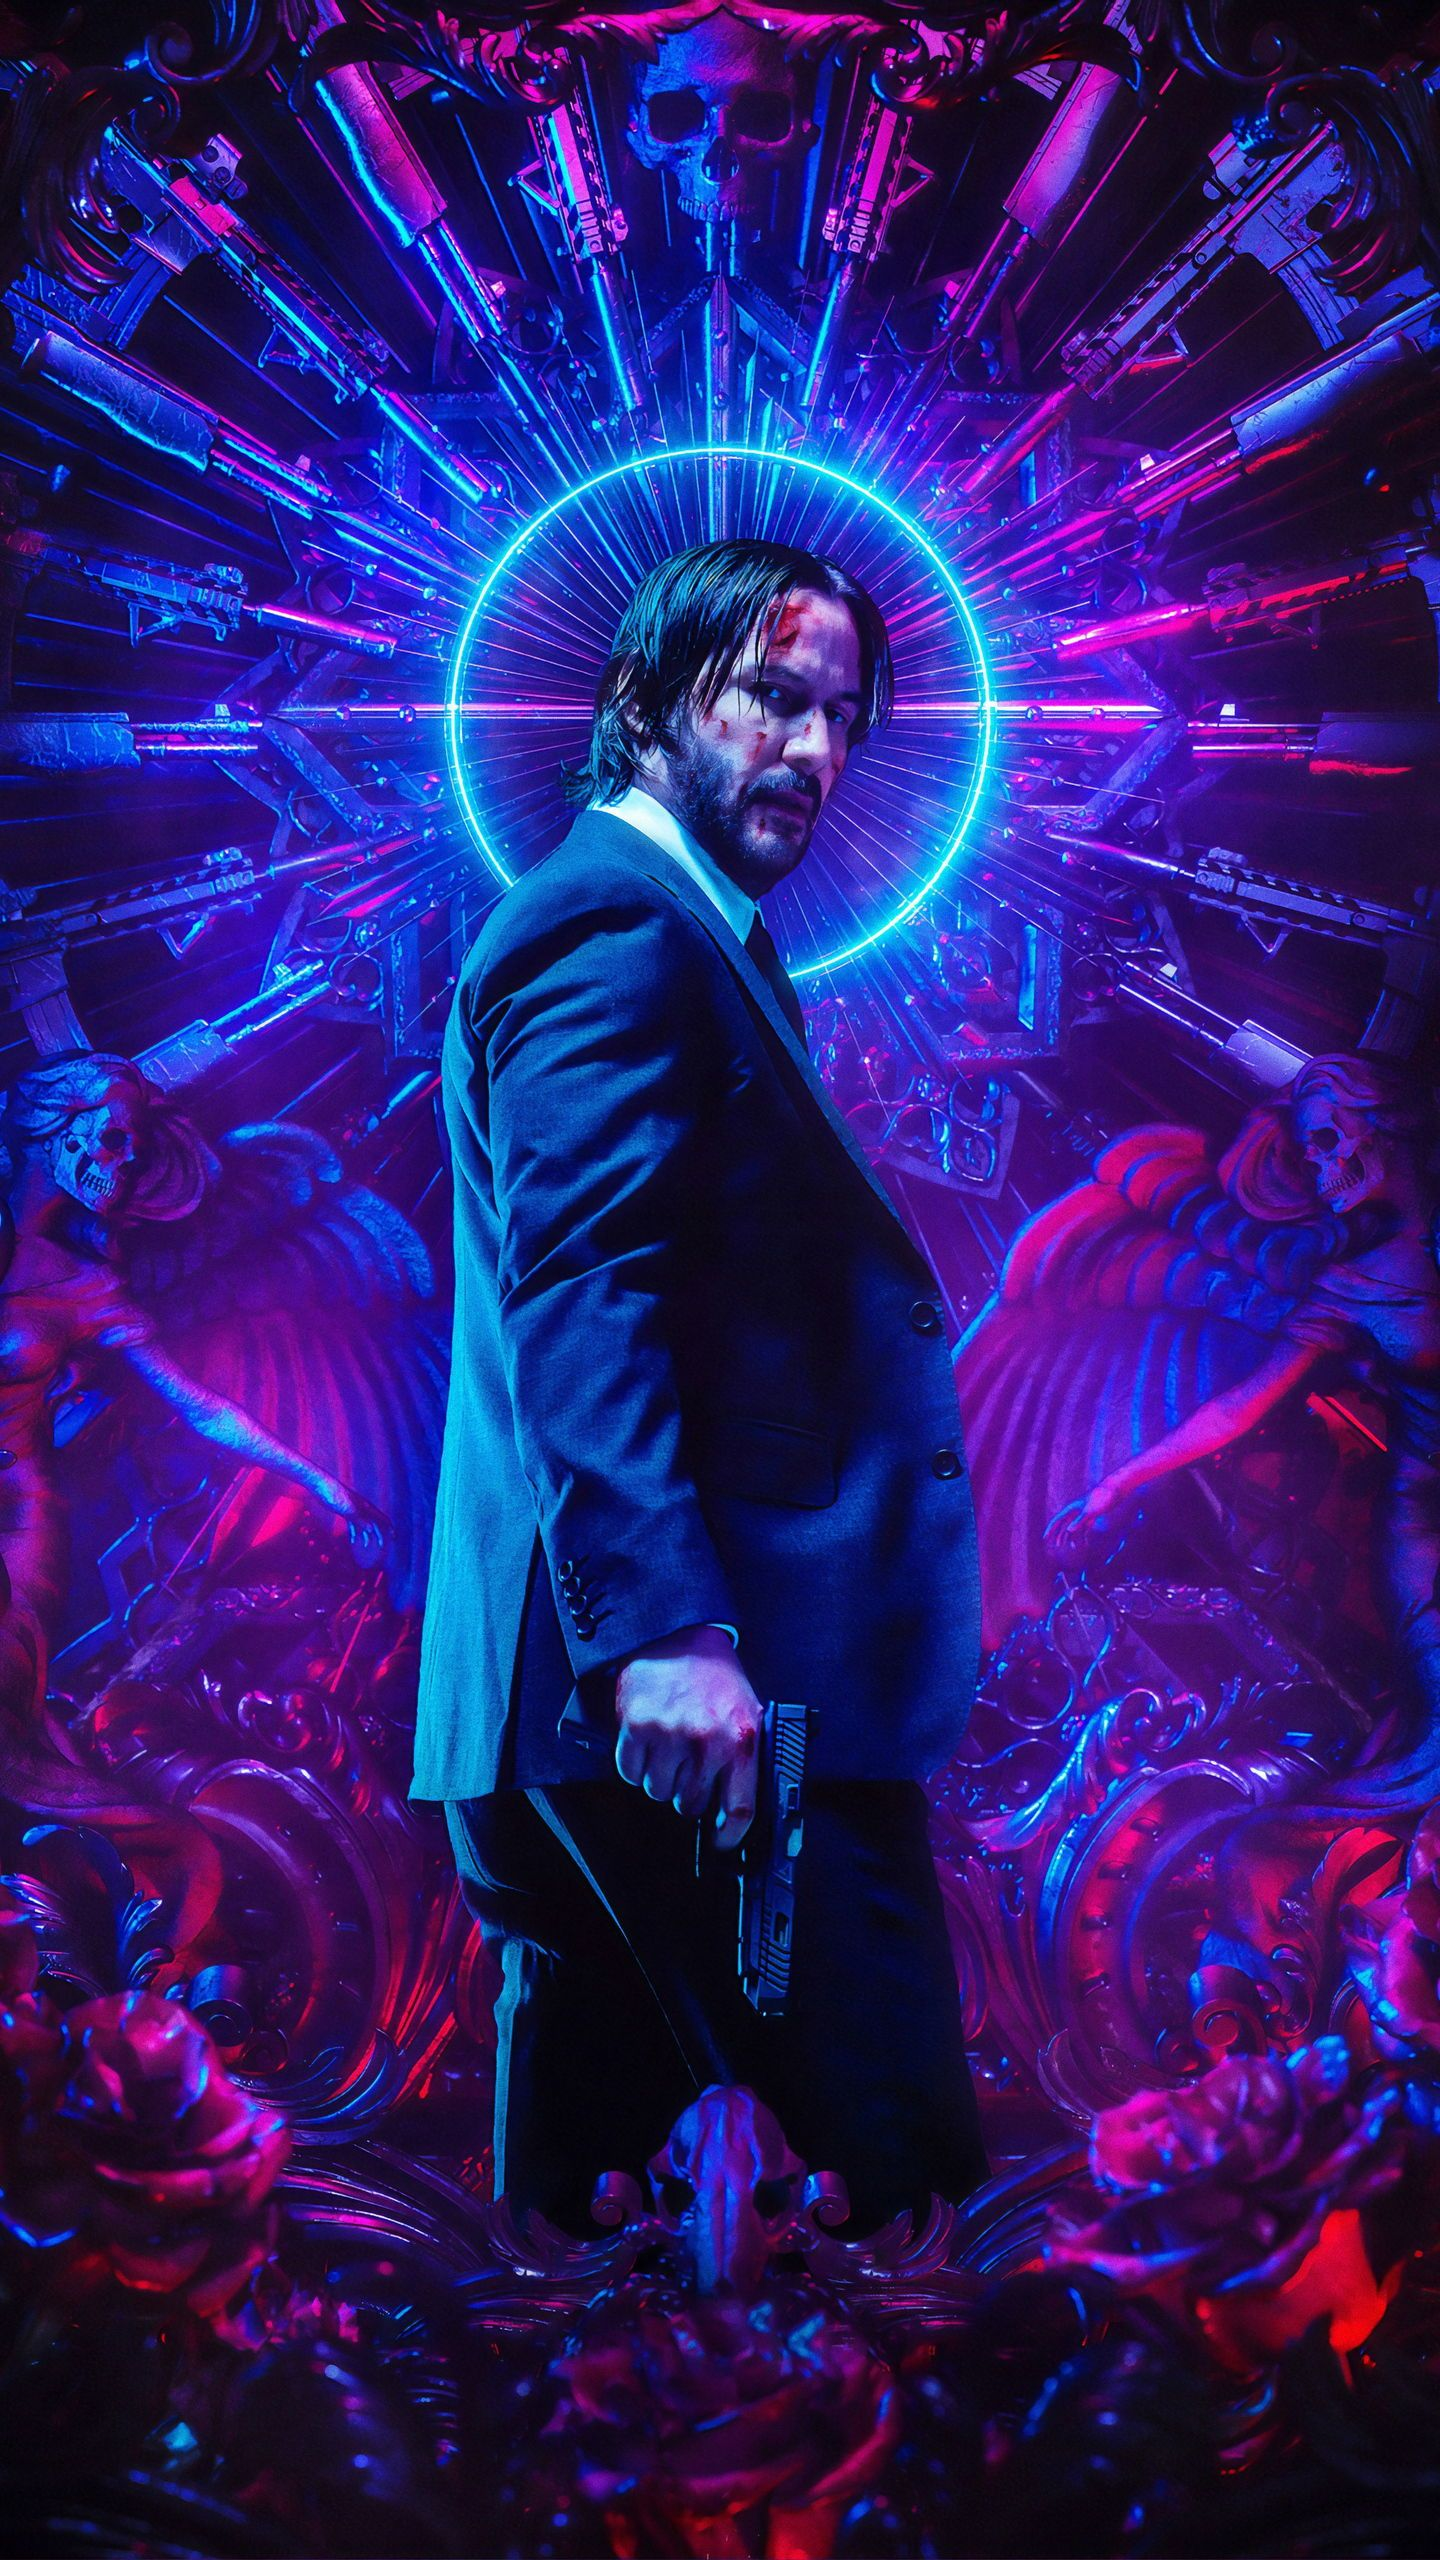 Jhon Wick 3 Wallpaper jhonwick wallpaper poster